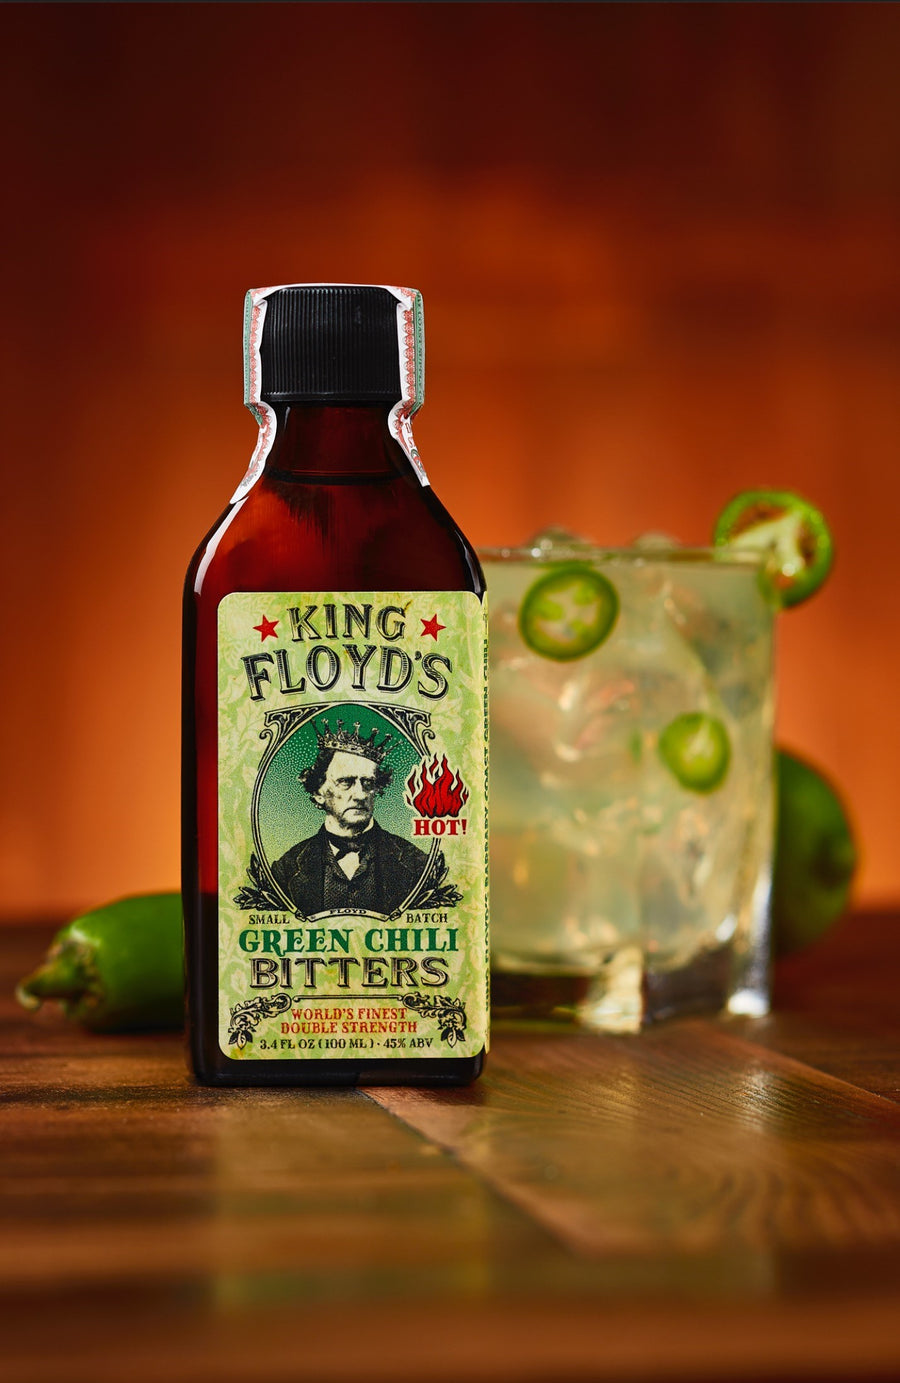 KING FLOYD'S Green Chili Bitters